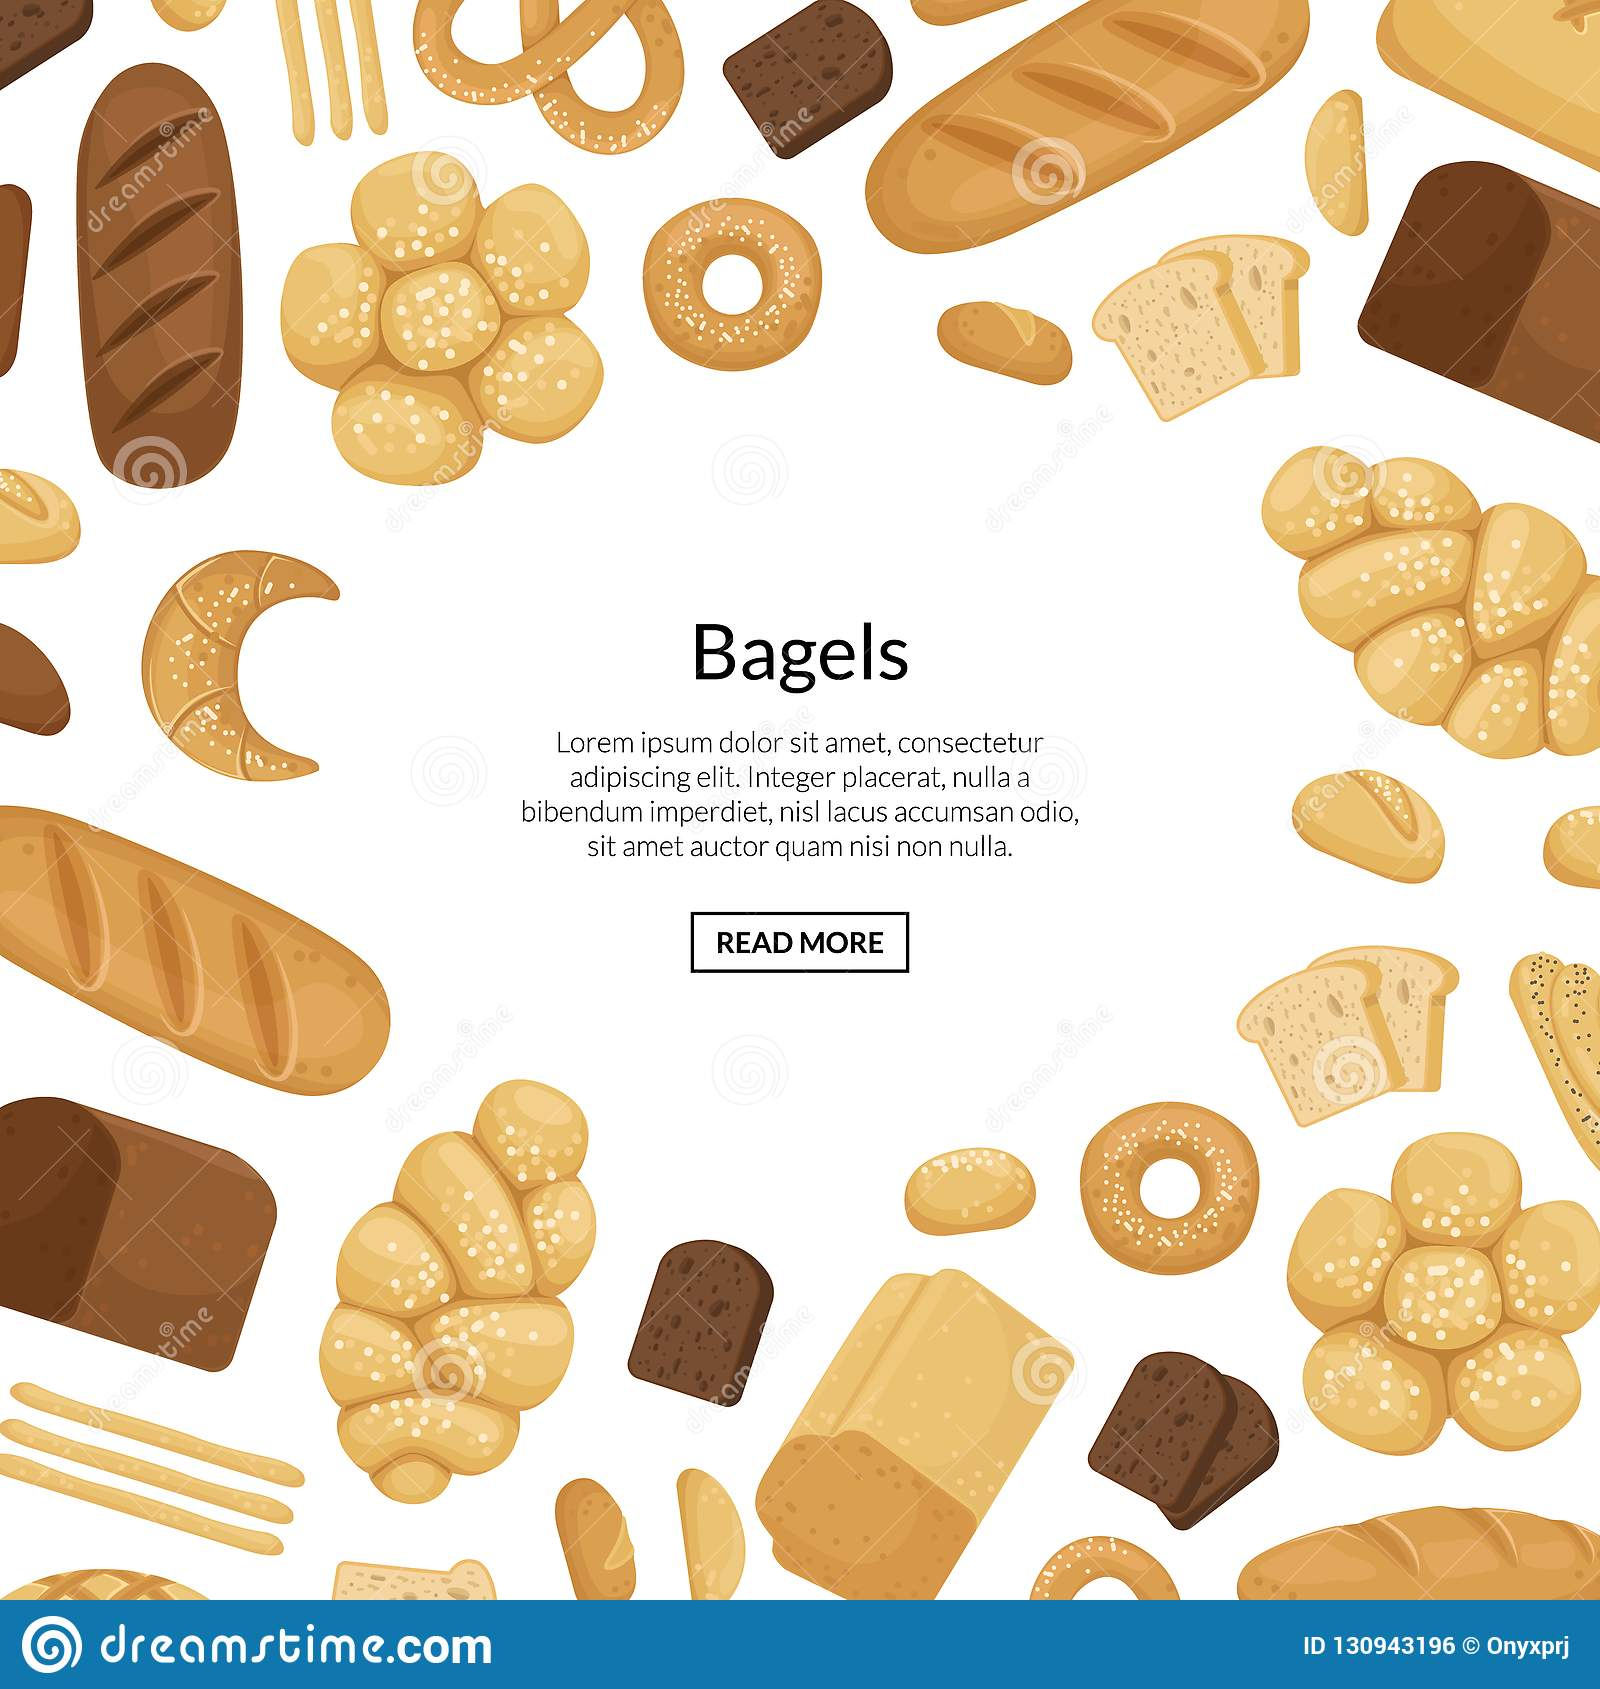 Vector cartoon bakery elements background with place for text illustration